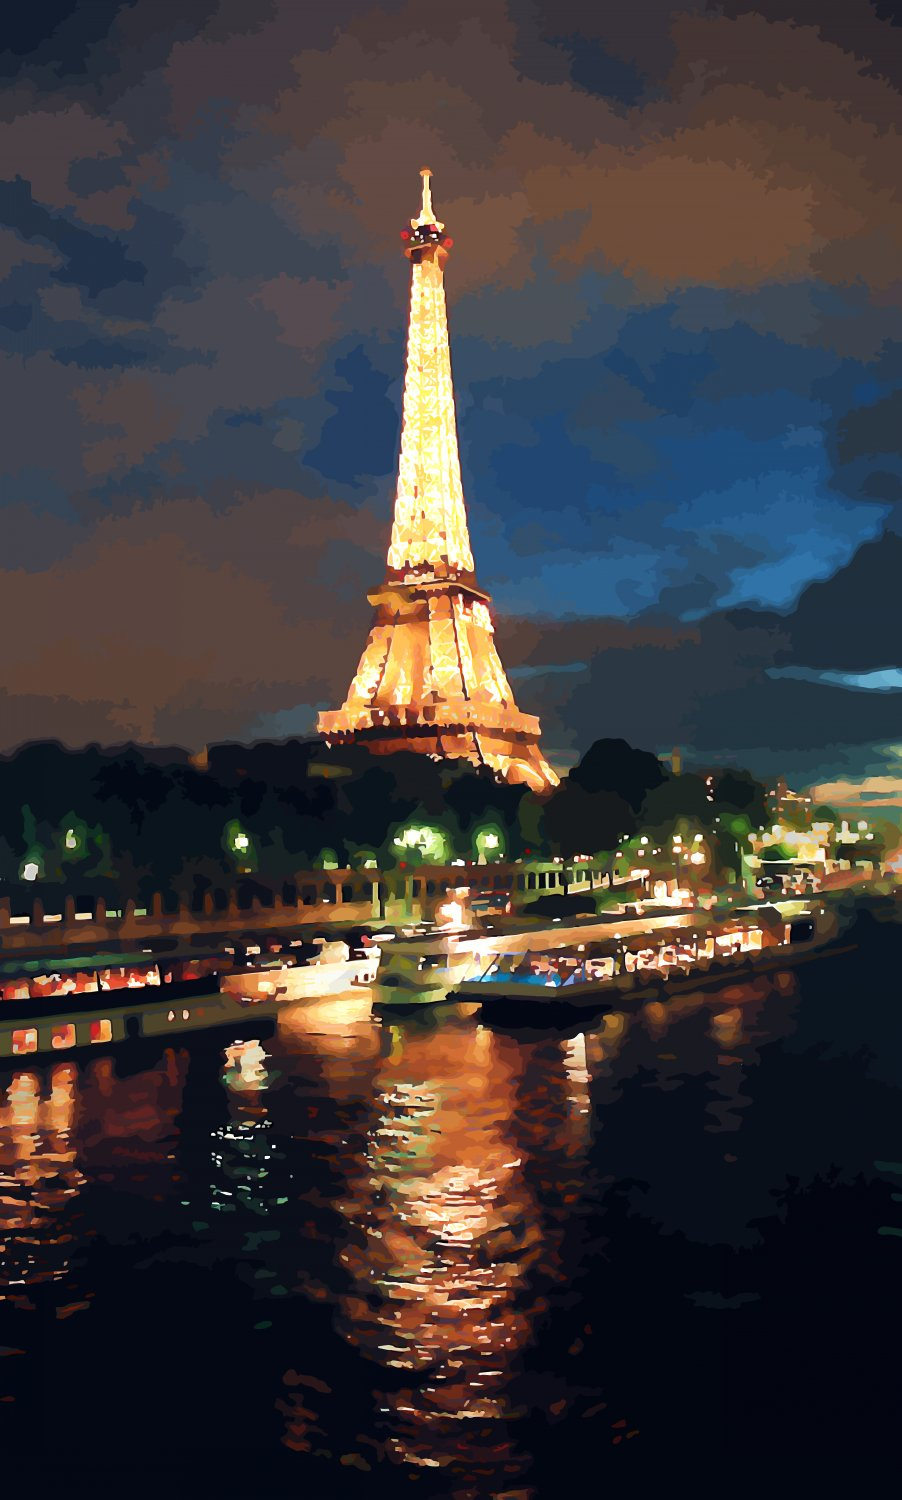 - Paris at night. The lights of the Eiffel Tower reflected in the Seine. - Paris, eiffel tower - - art  - photography - by Tony Karp